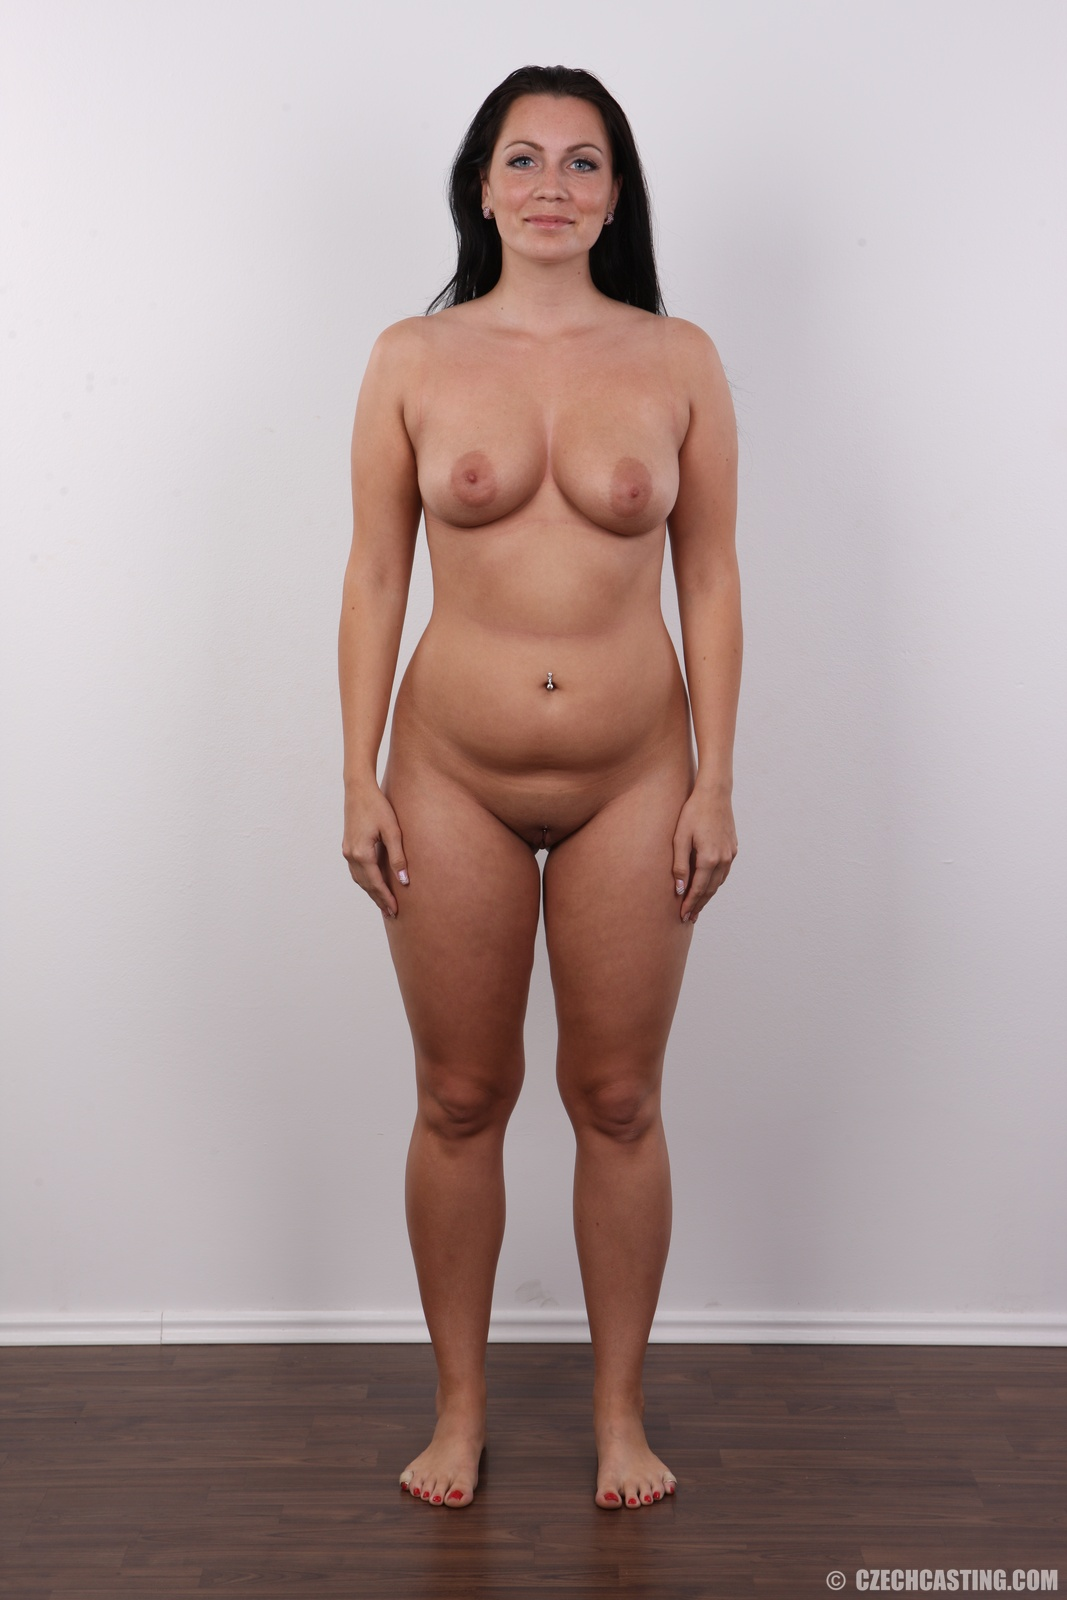 Czech milf impressed with geeks massive cock and excellent